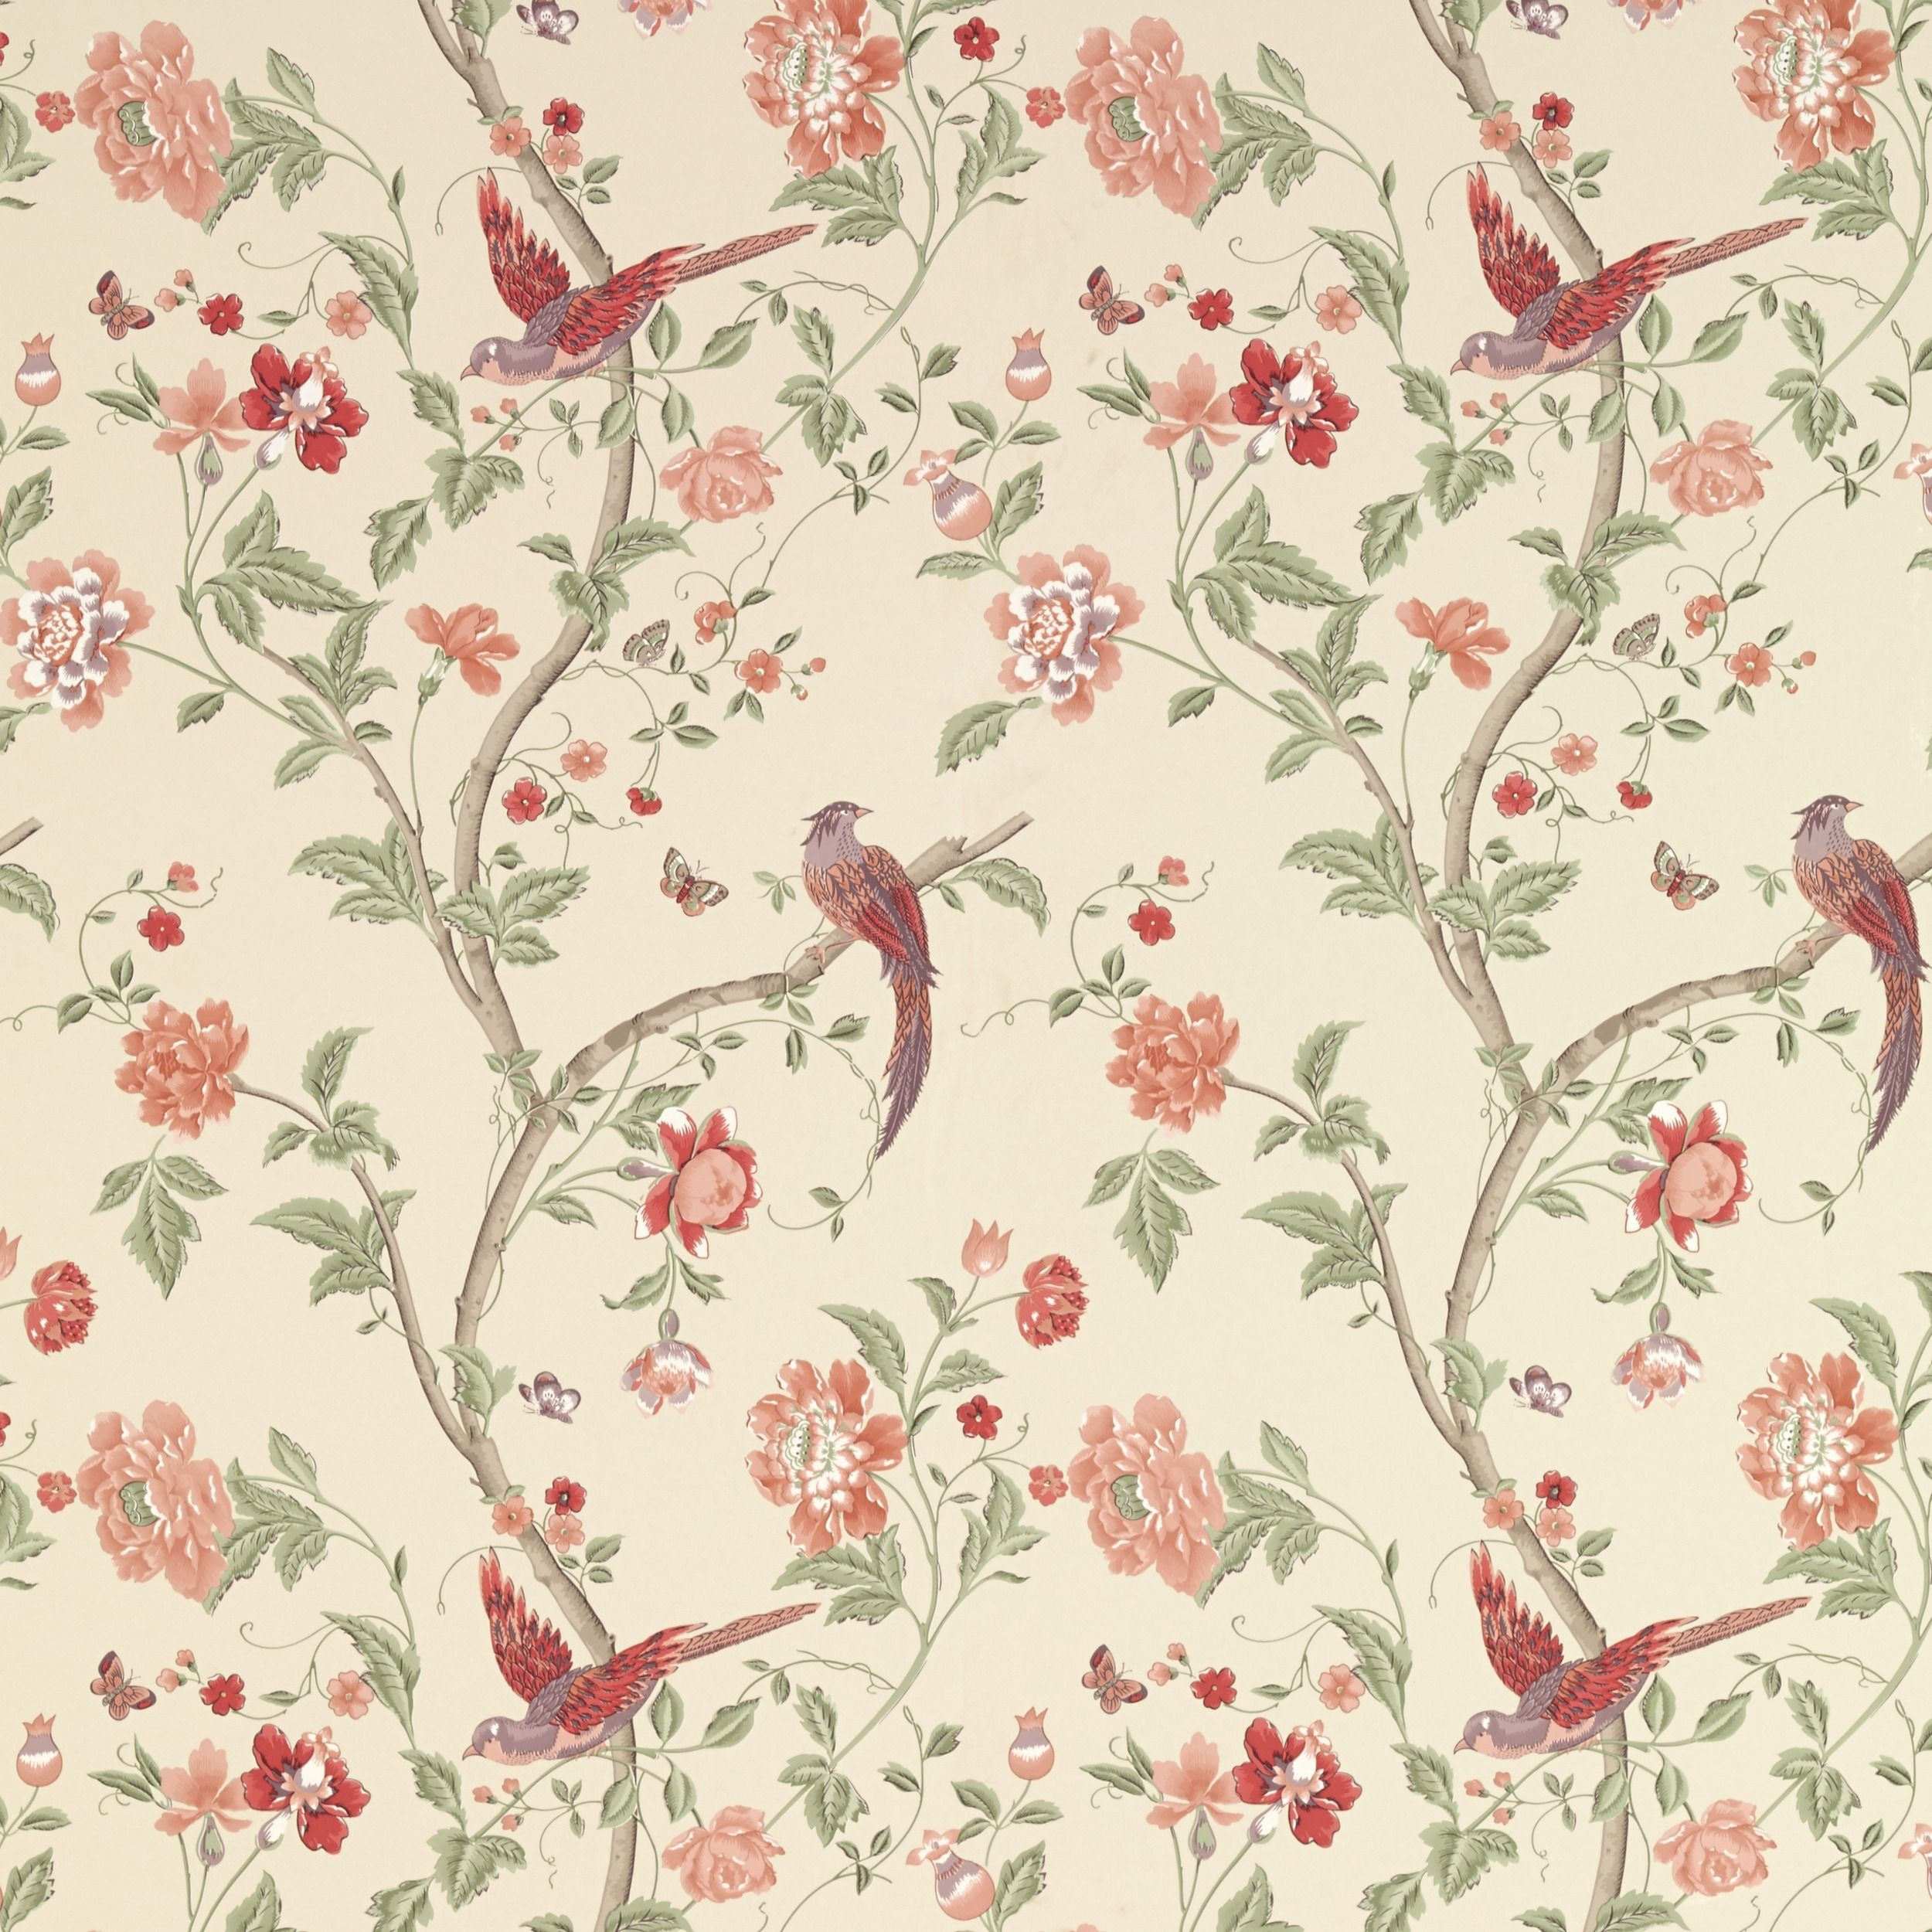 Laura Ashley summer palace cranberry wallpaper. Going on